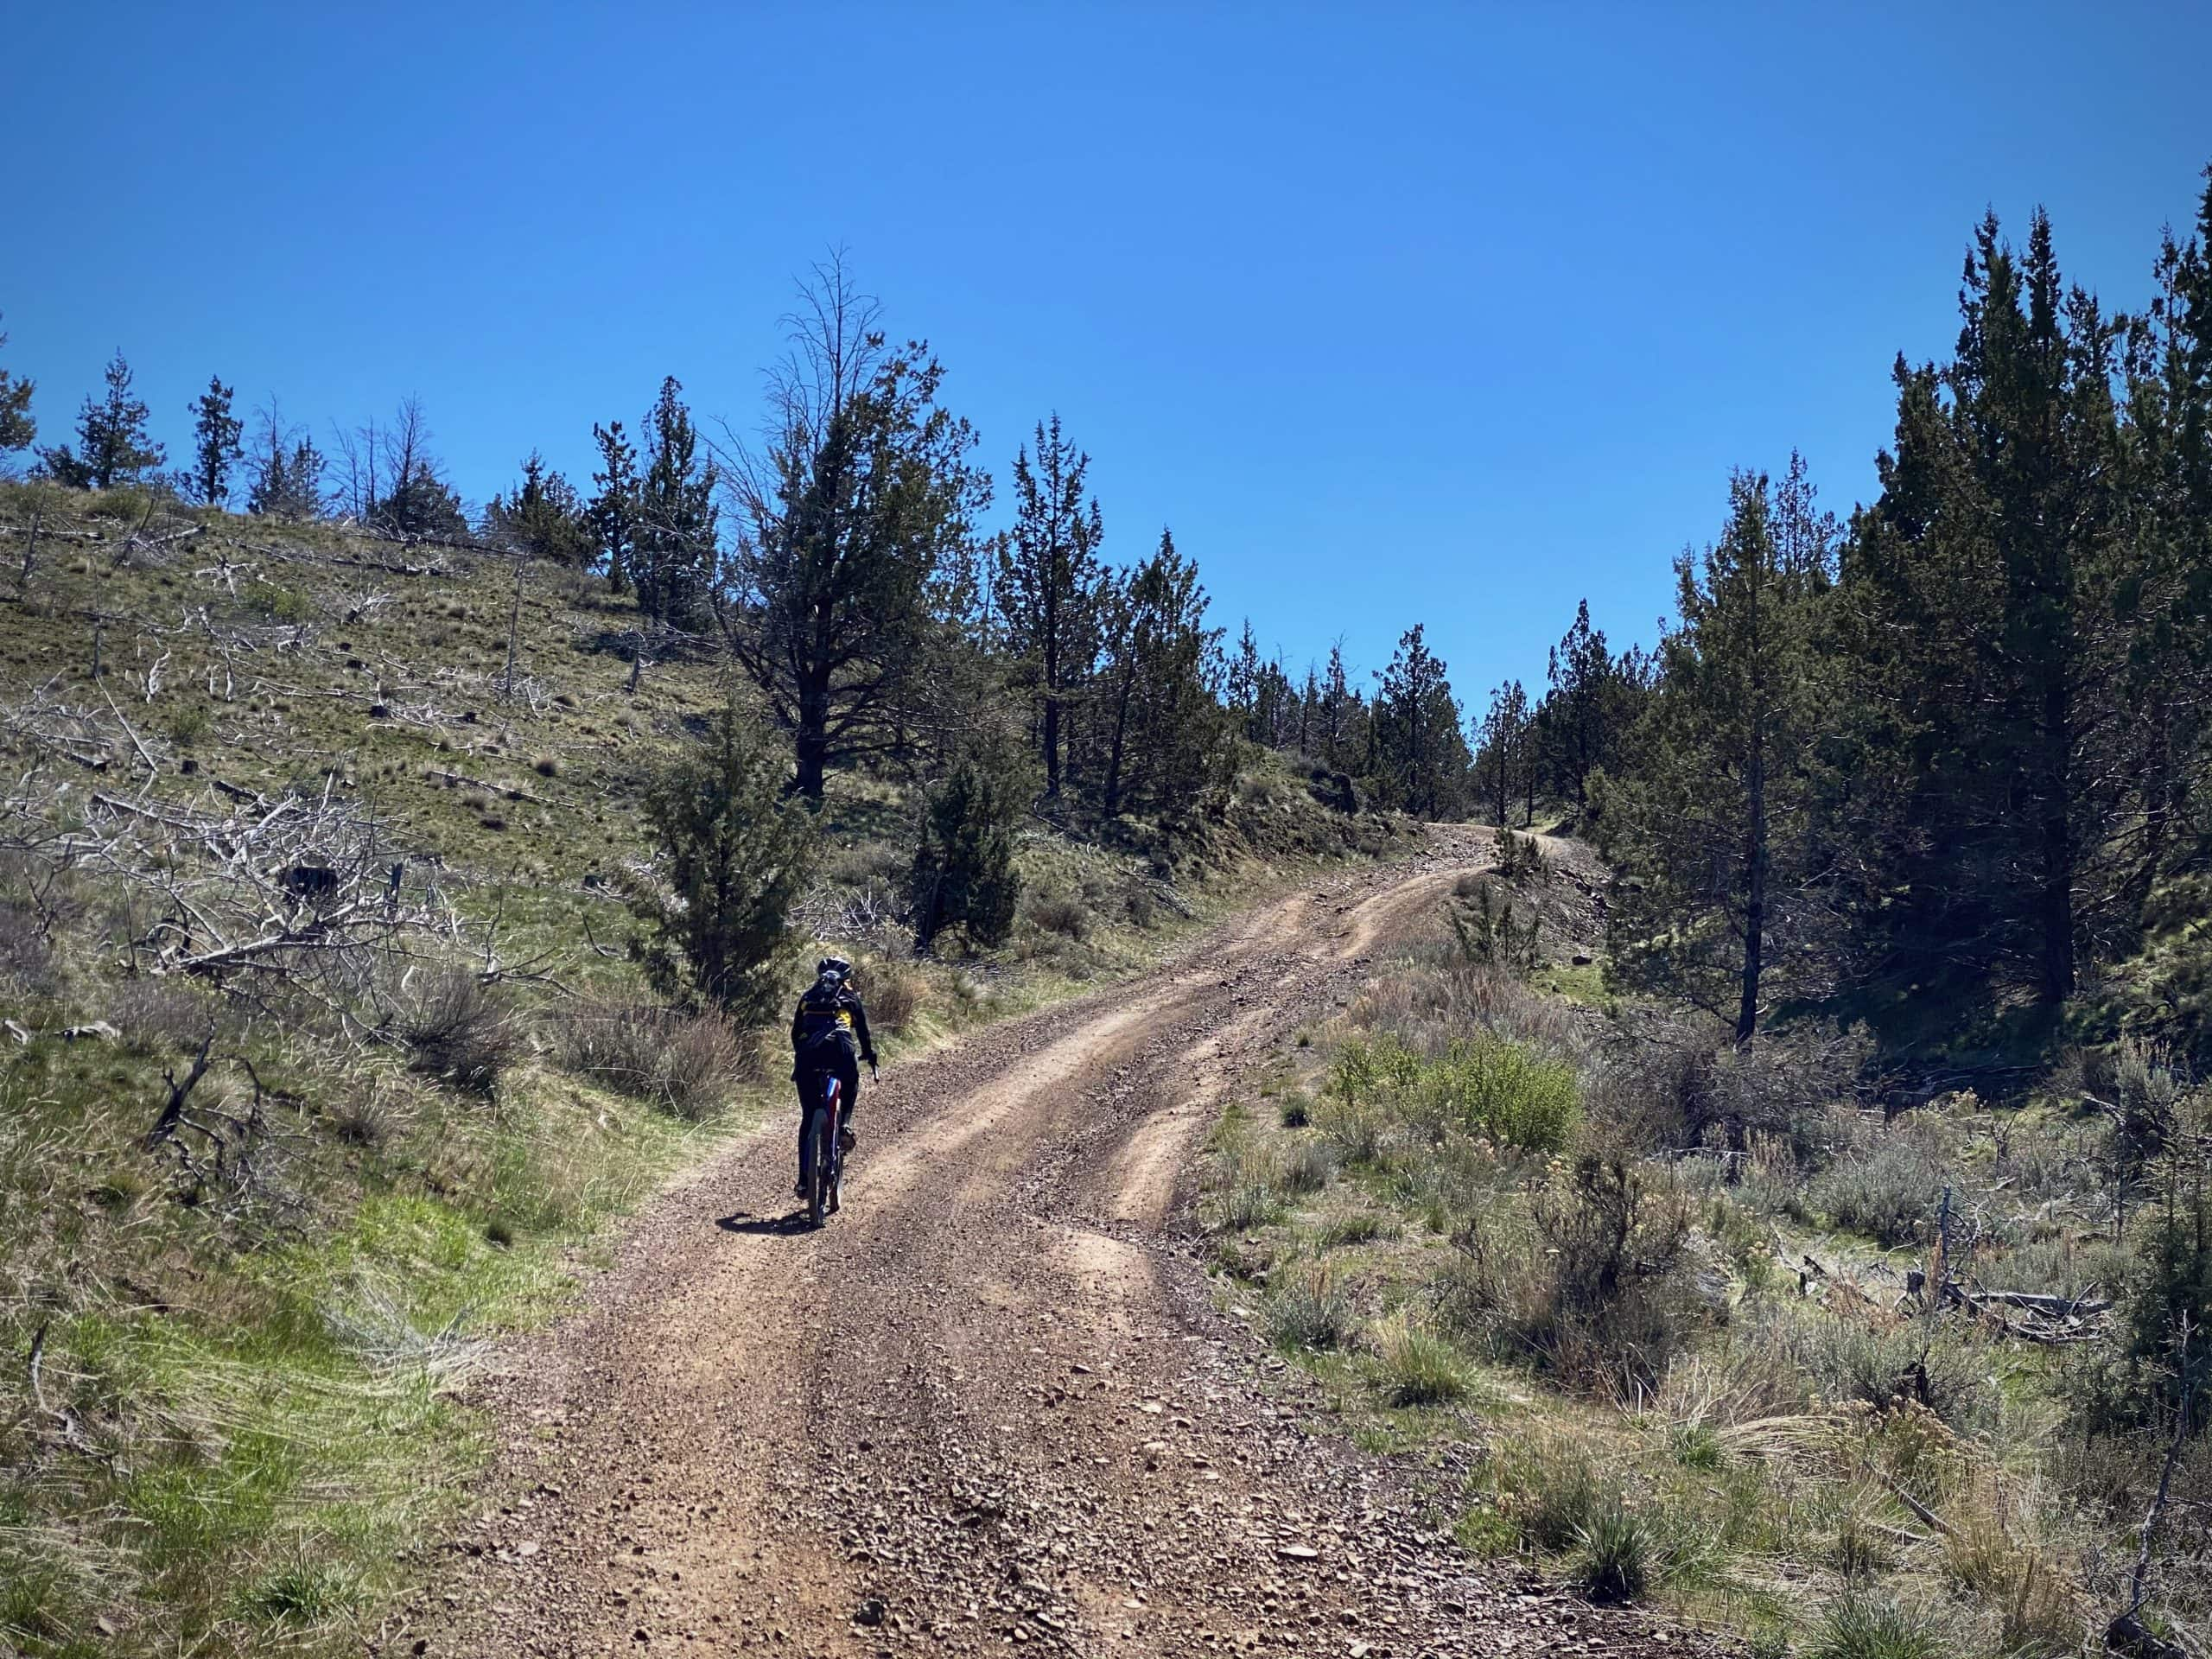 Cyclist nearing summit of Kings Gap spring in the Crooked River National Grassland near Madras, Oregon.